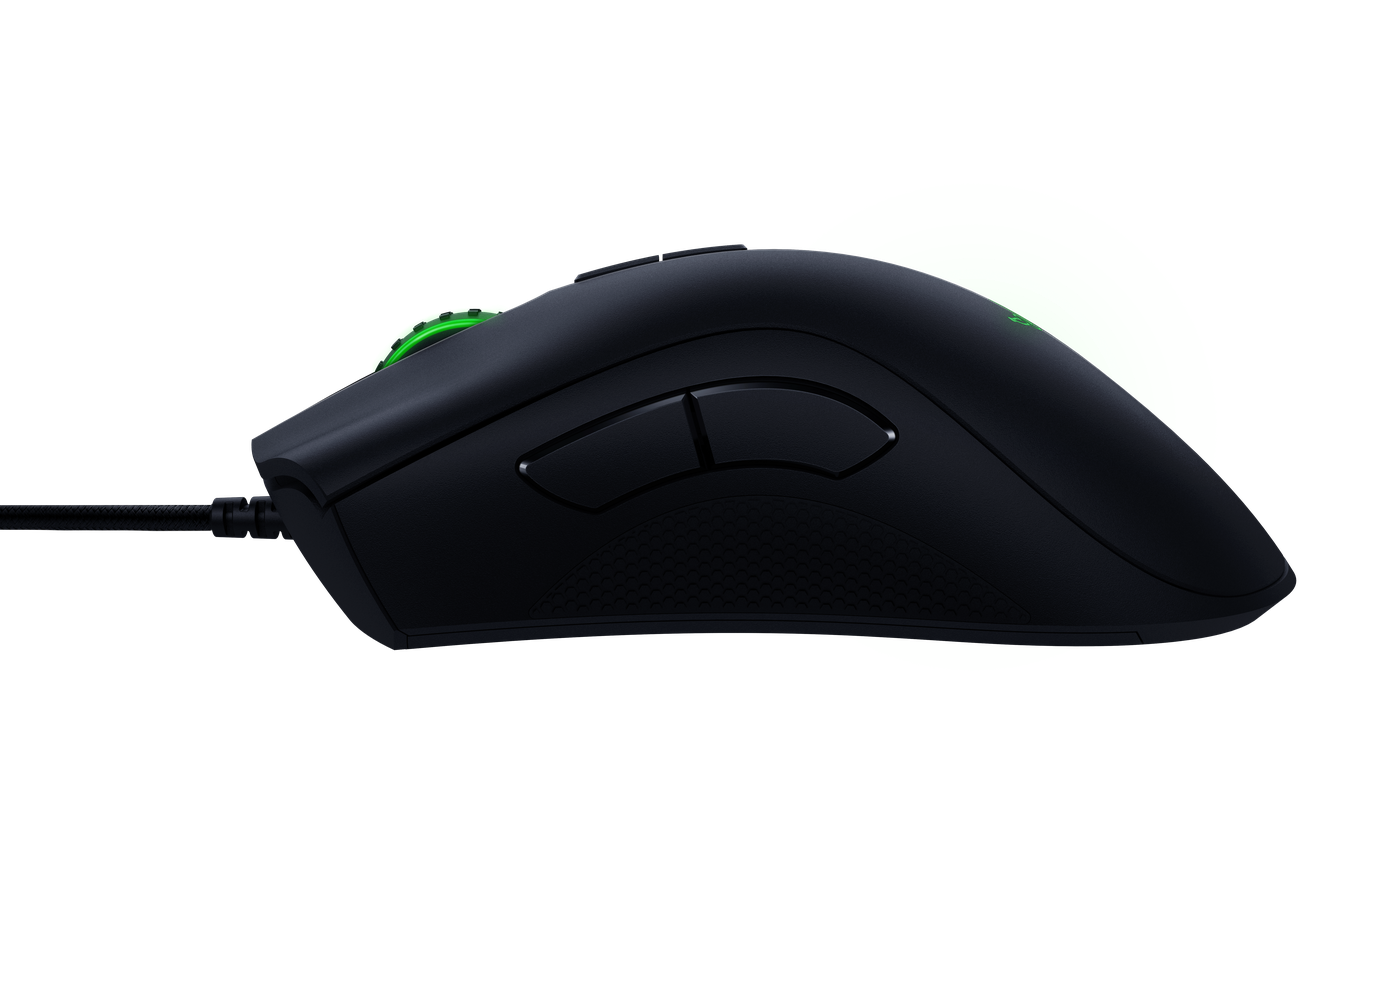 Razer's new DeathAdder Elite is an exceptionally sensitive gaming mouse